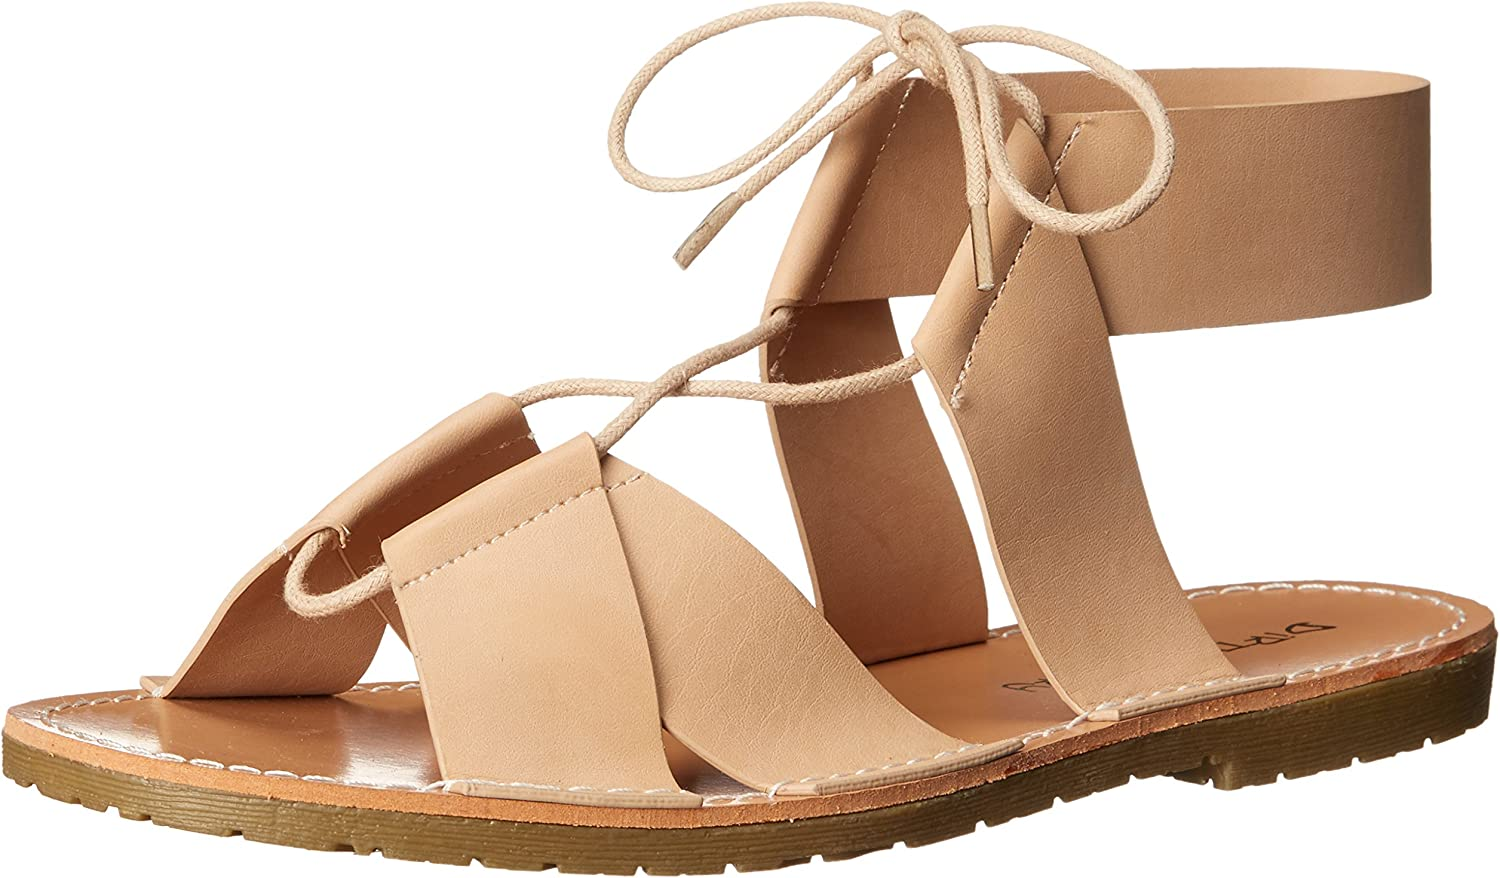 Dirty Laundry by Chinese Laundry Women's Emphasis Sandal